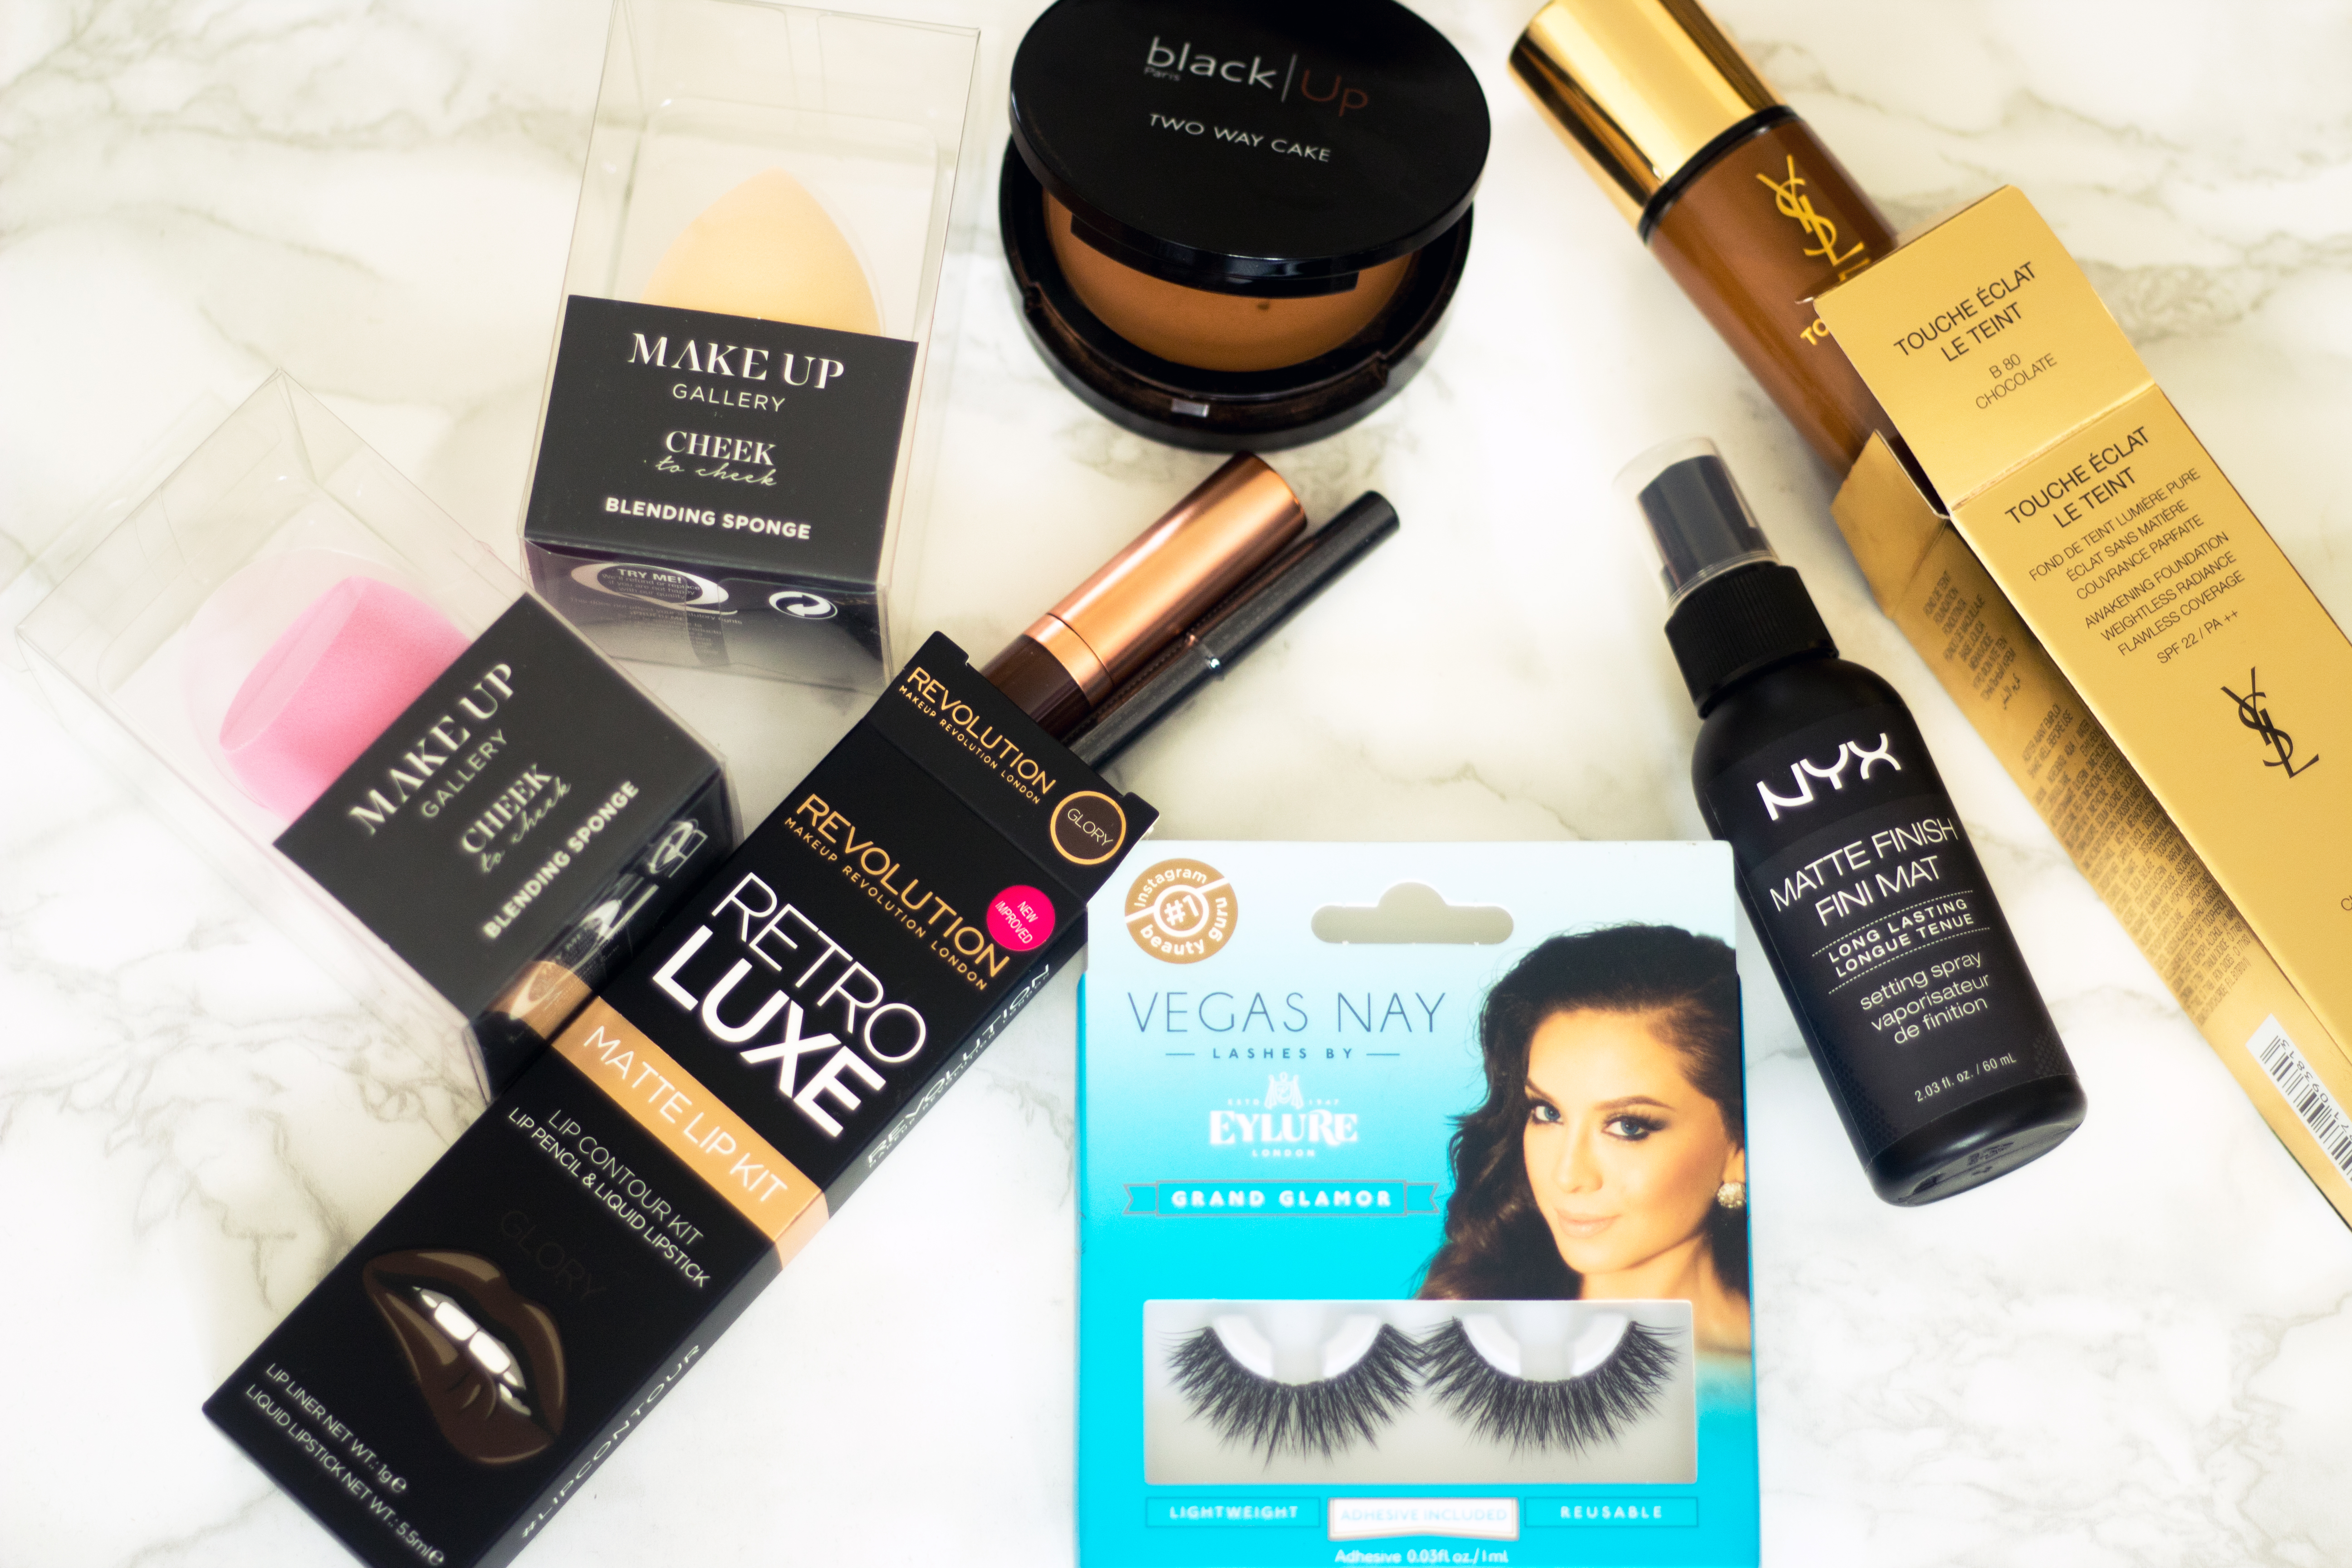 NEW IN: A FEW BEAUTY FAVOURITES